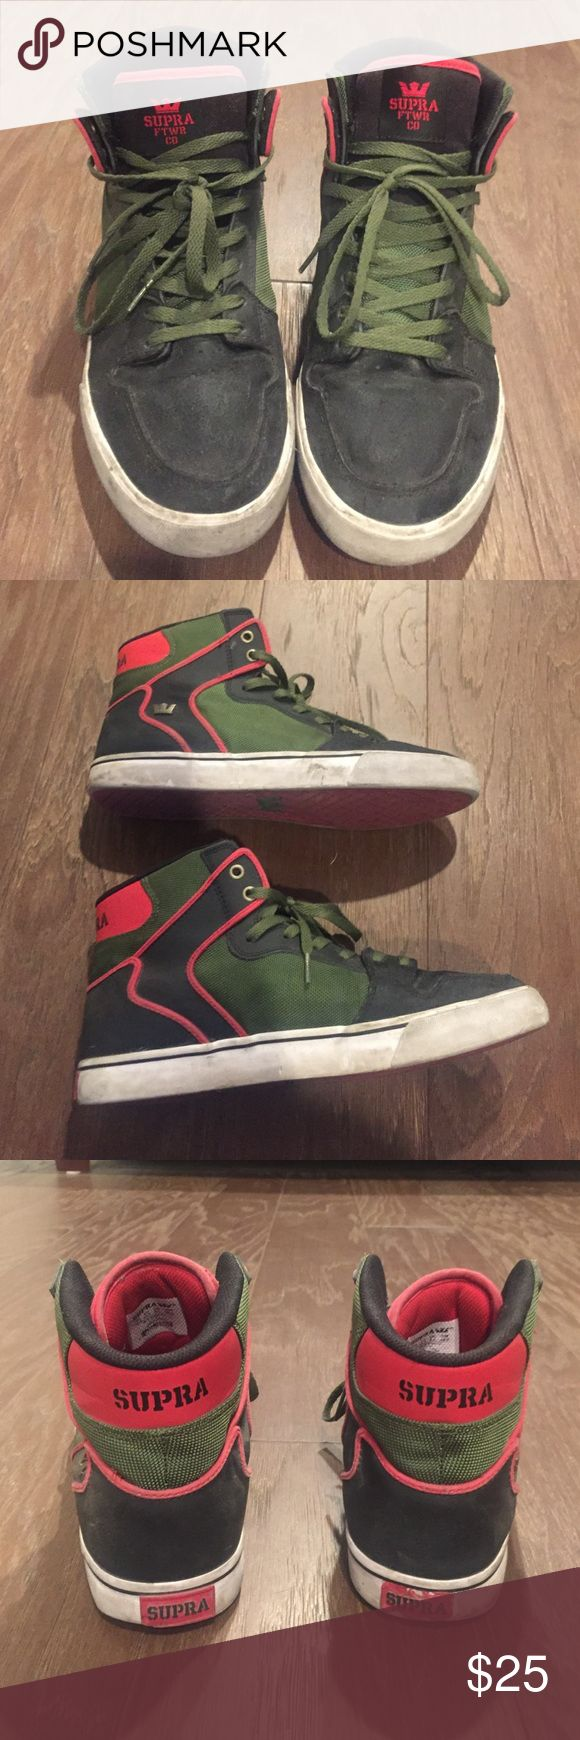 Men's Supra sneakers Men's Supra sneakers in size 10.5. These come in the Gucci colors red, green and black! Light wear and tear, all they need is some clean up. Sorry NO TRADES. Please feel free to make an offer as the price is negotiable! Supra Shoes Sneakers